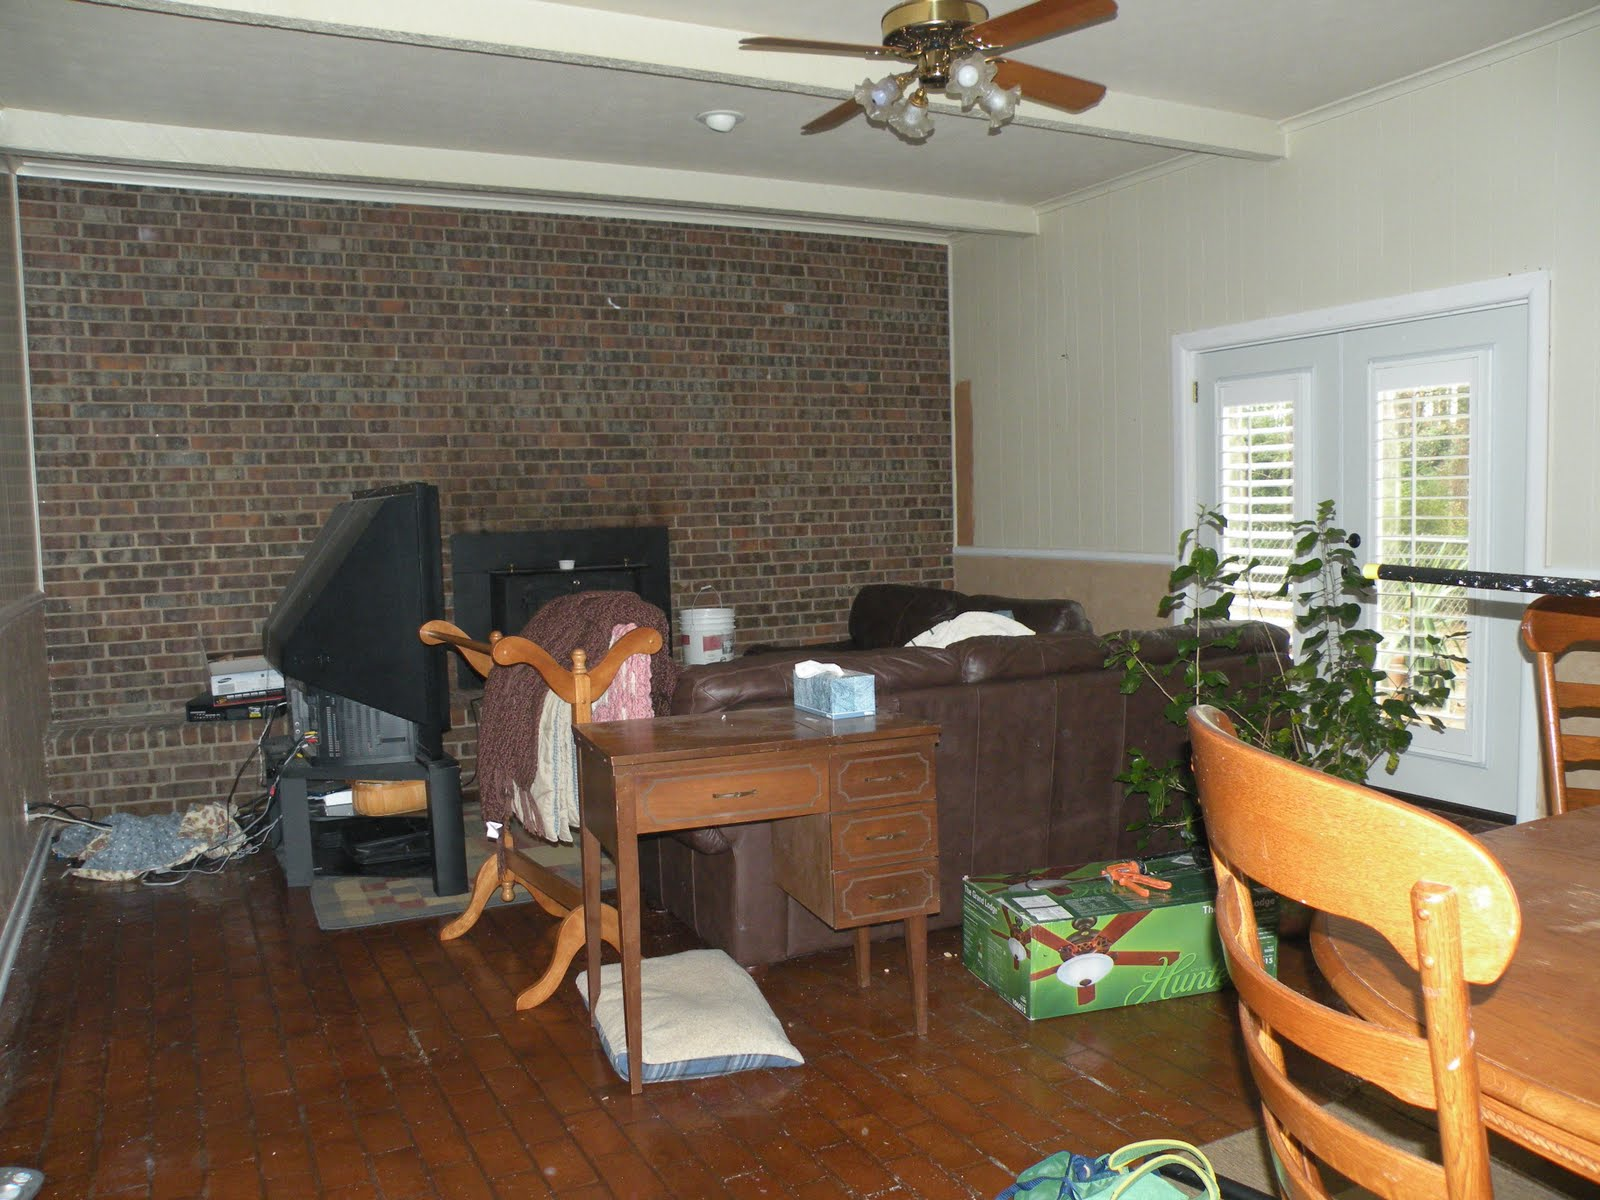 more pics2014: Remodelaholic | Painting Over Knotty Pine Paneling; Complete Master ...